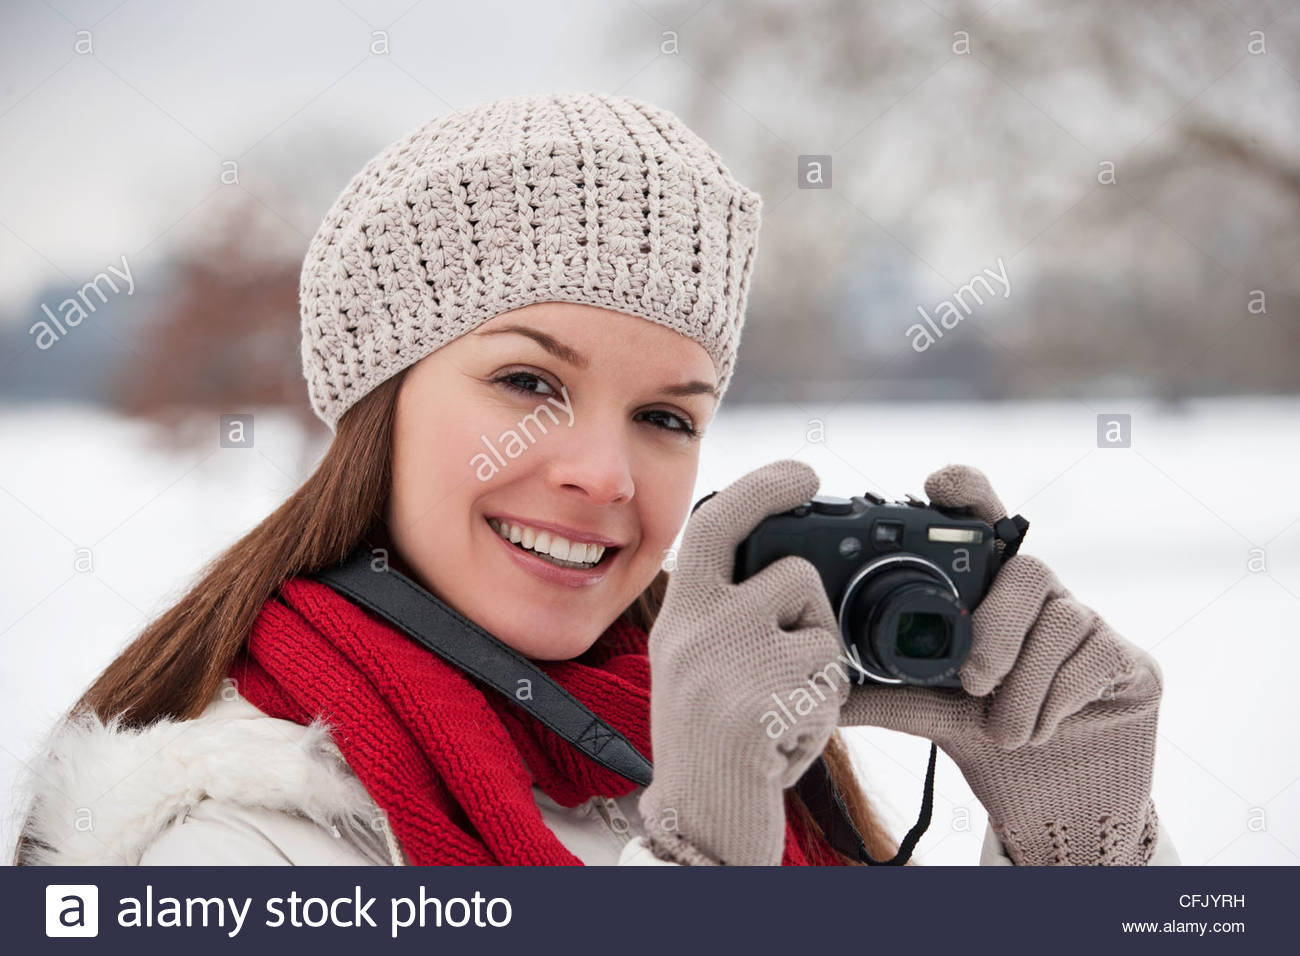 A young woman standing in the snow, taking a photograph - Stock Image